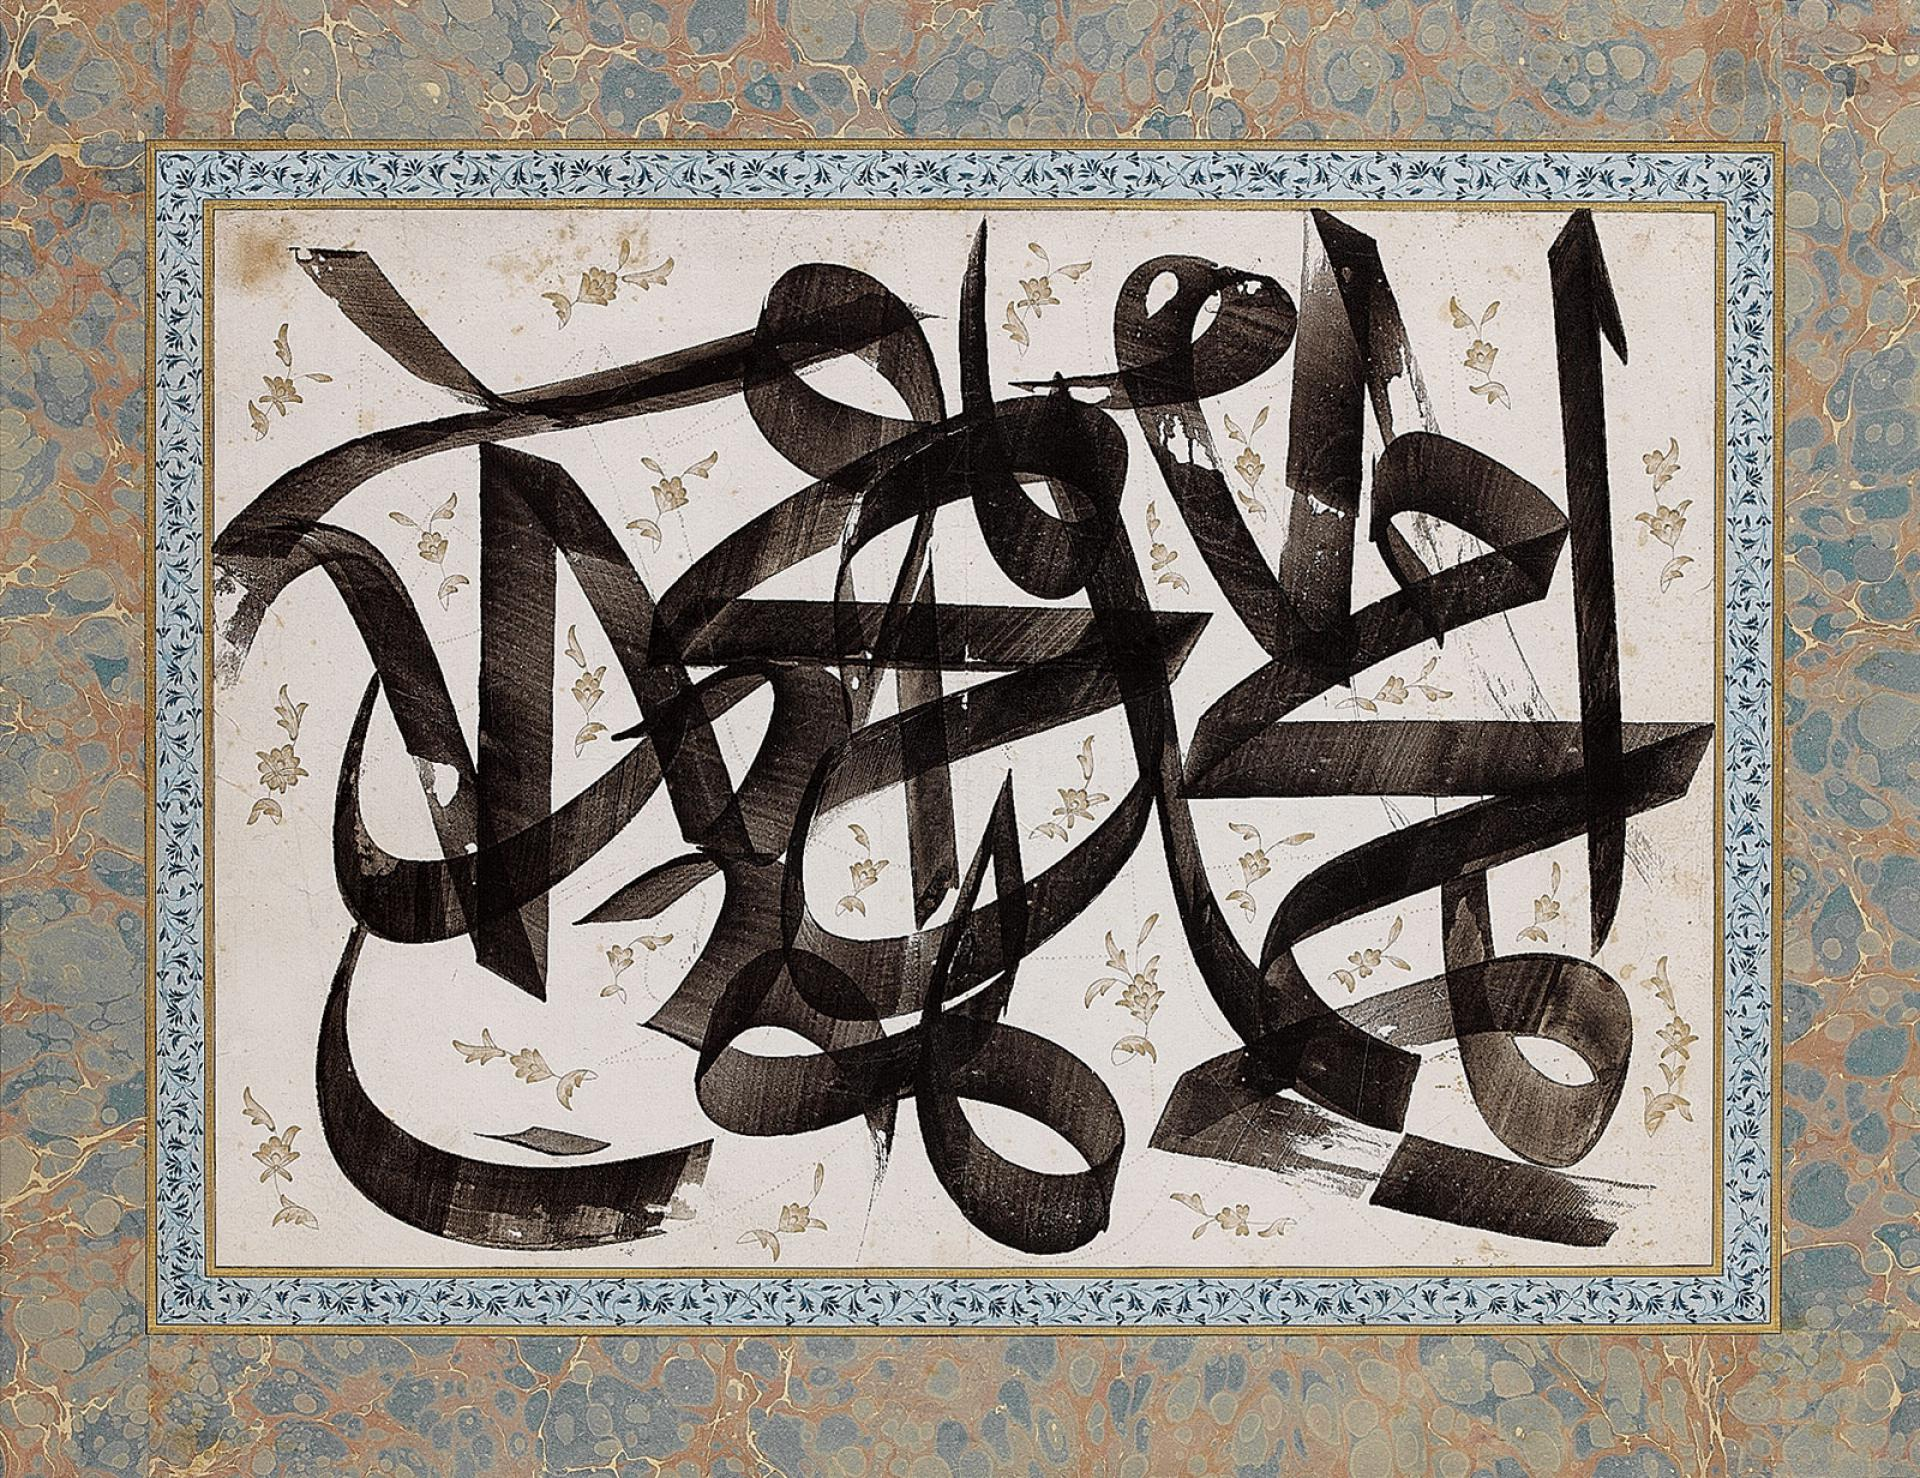 SHM15614 - Calligraphic compositionCalligrapher: Mahmud Celâleddin (1750?-1829)Ottoman, early 19th centuryPaper - black ink - gold